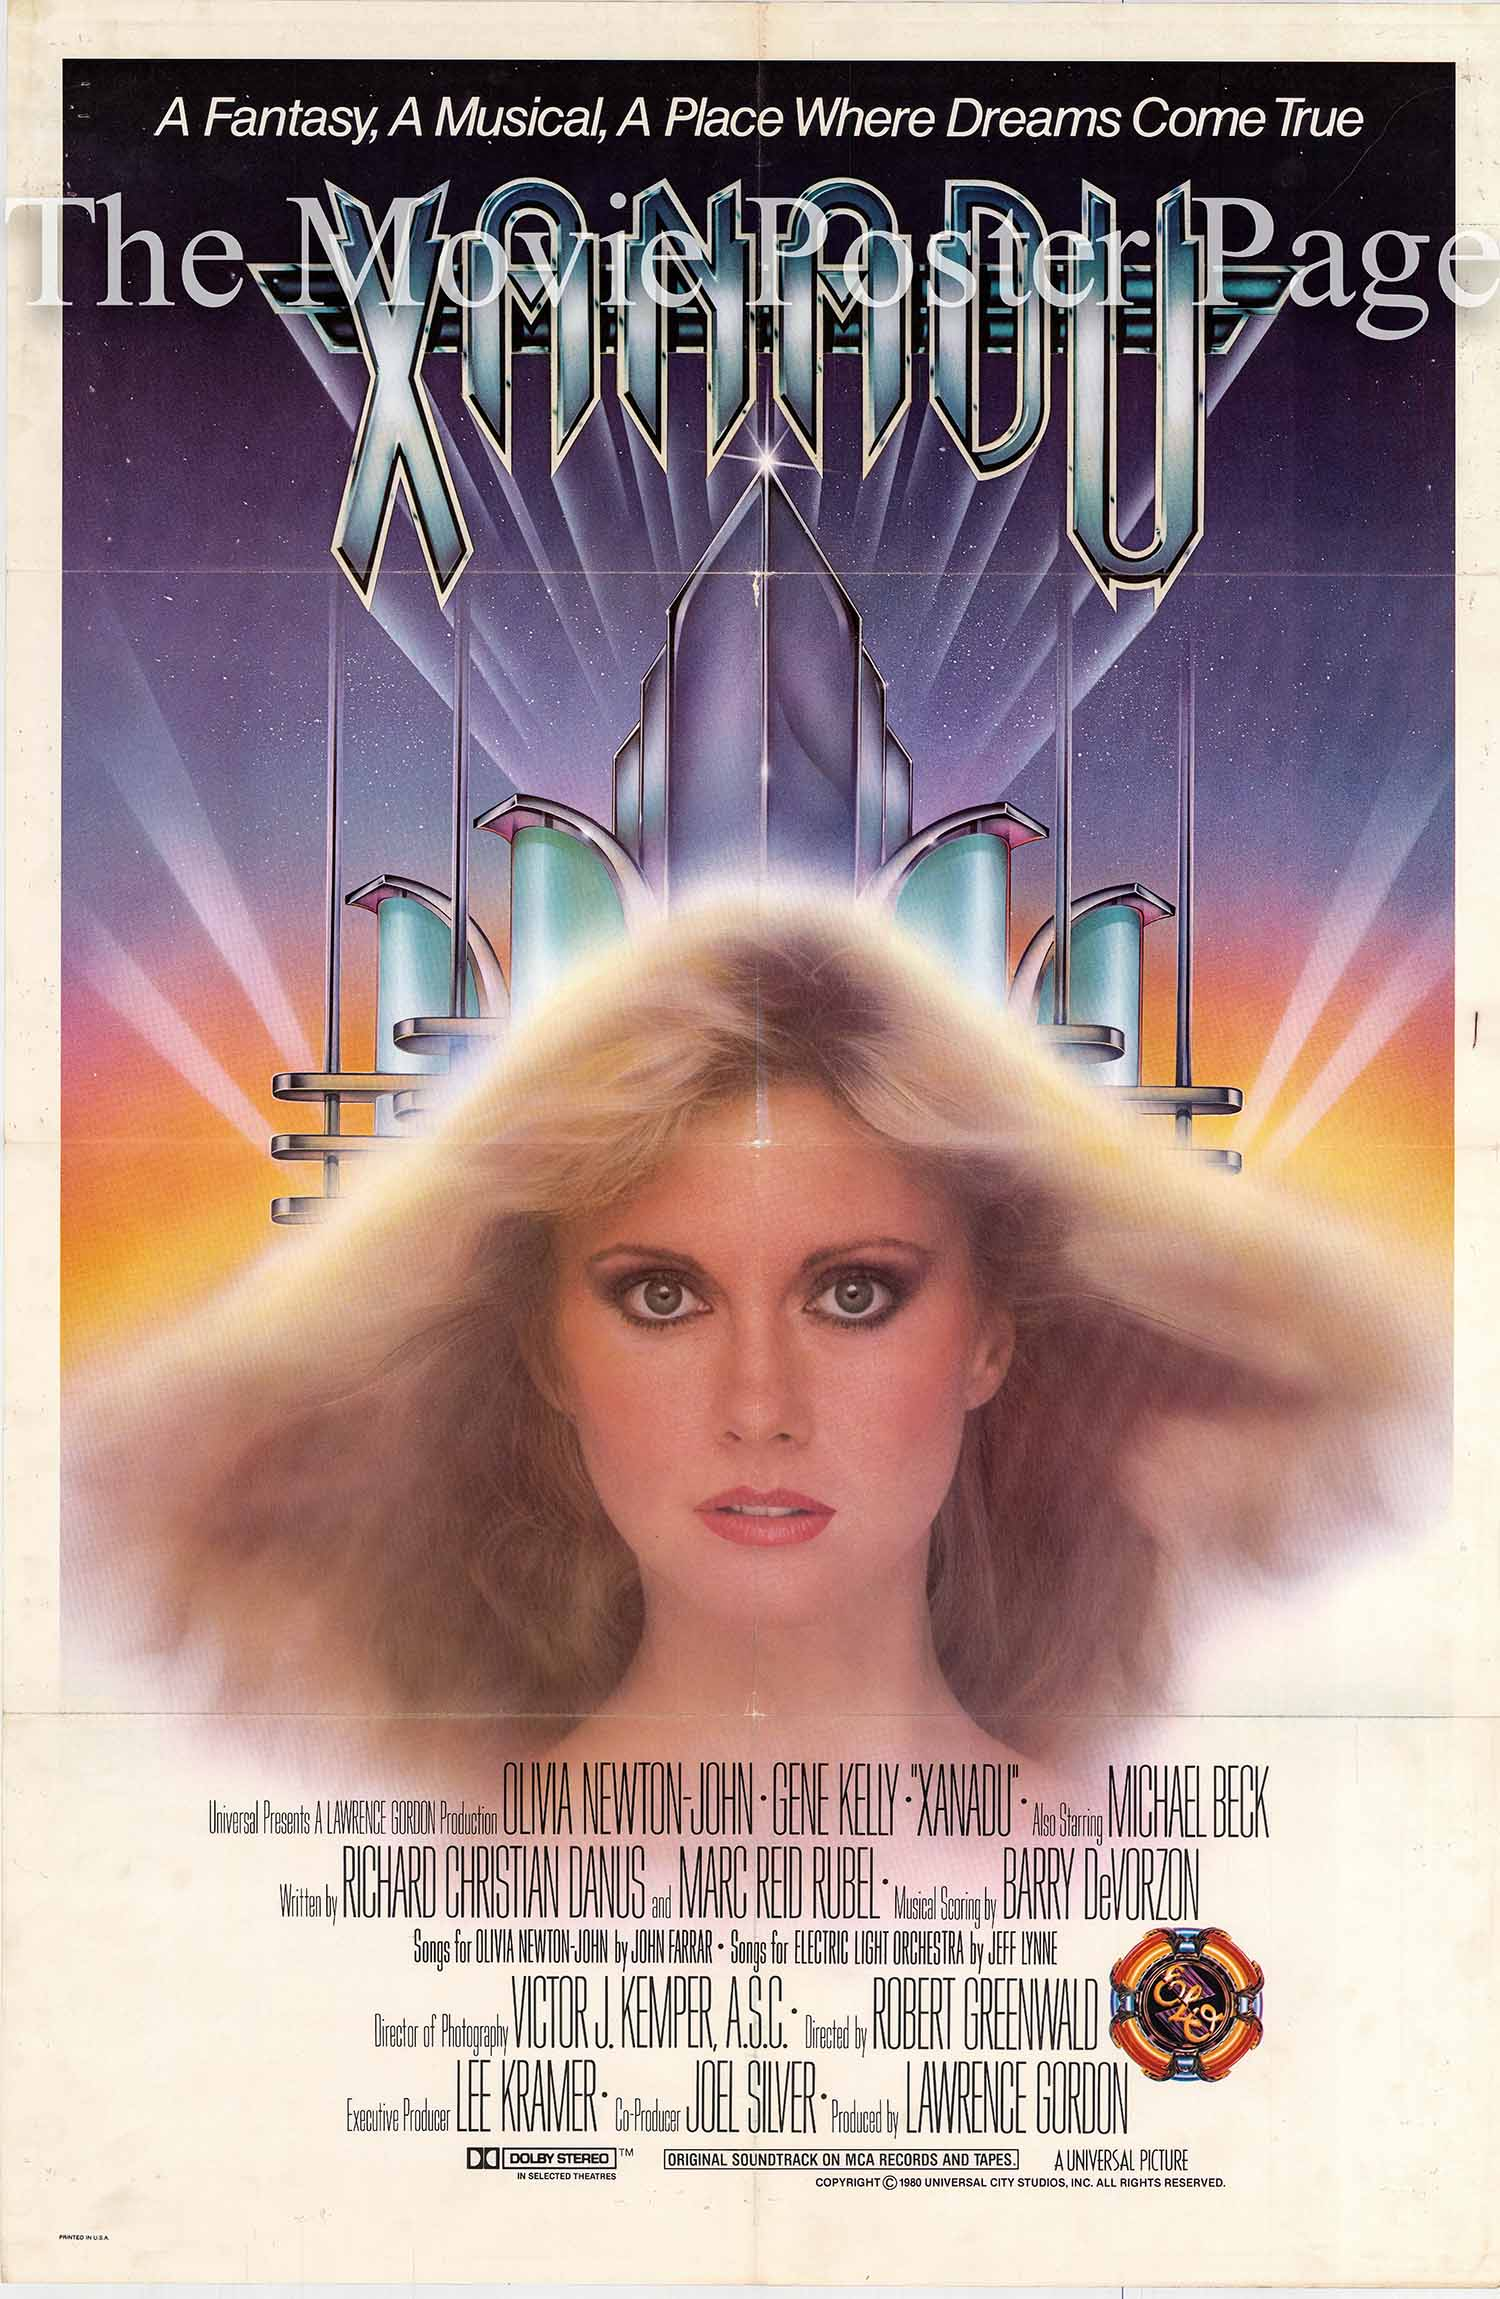 Pictured is a US promotional poster for the 1980 Robert Greewald film Xanadu starring Olivia Newton-John.